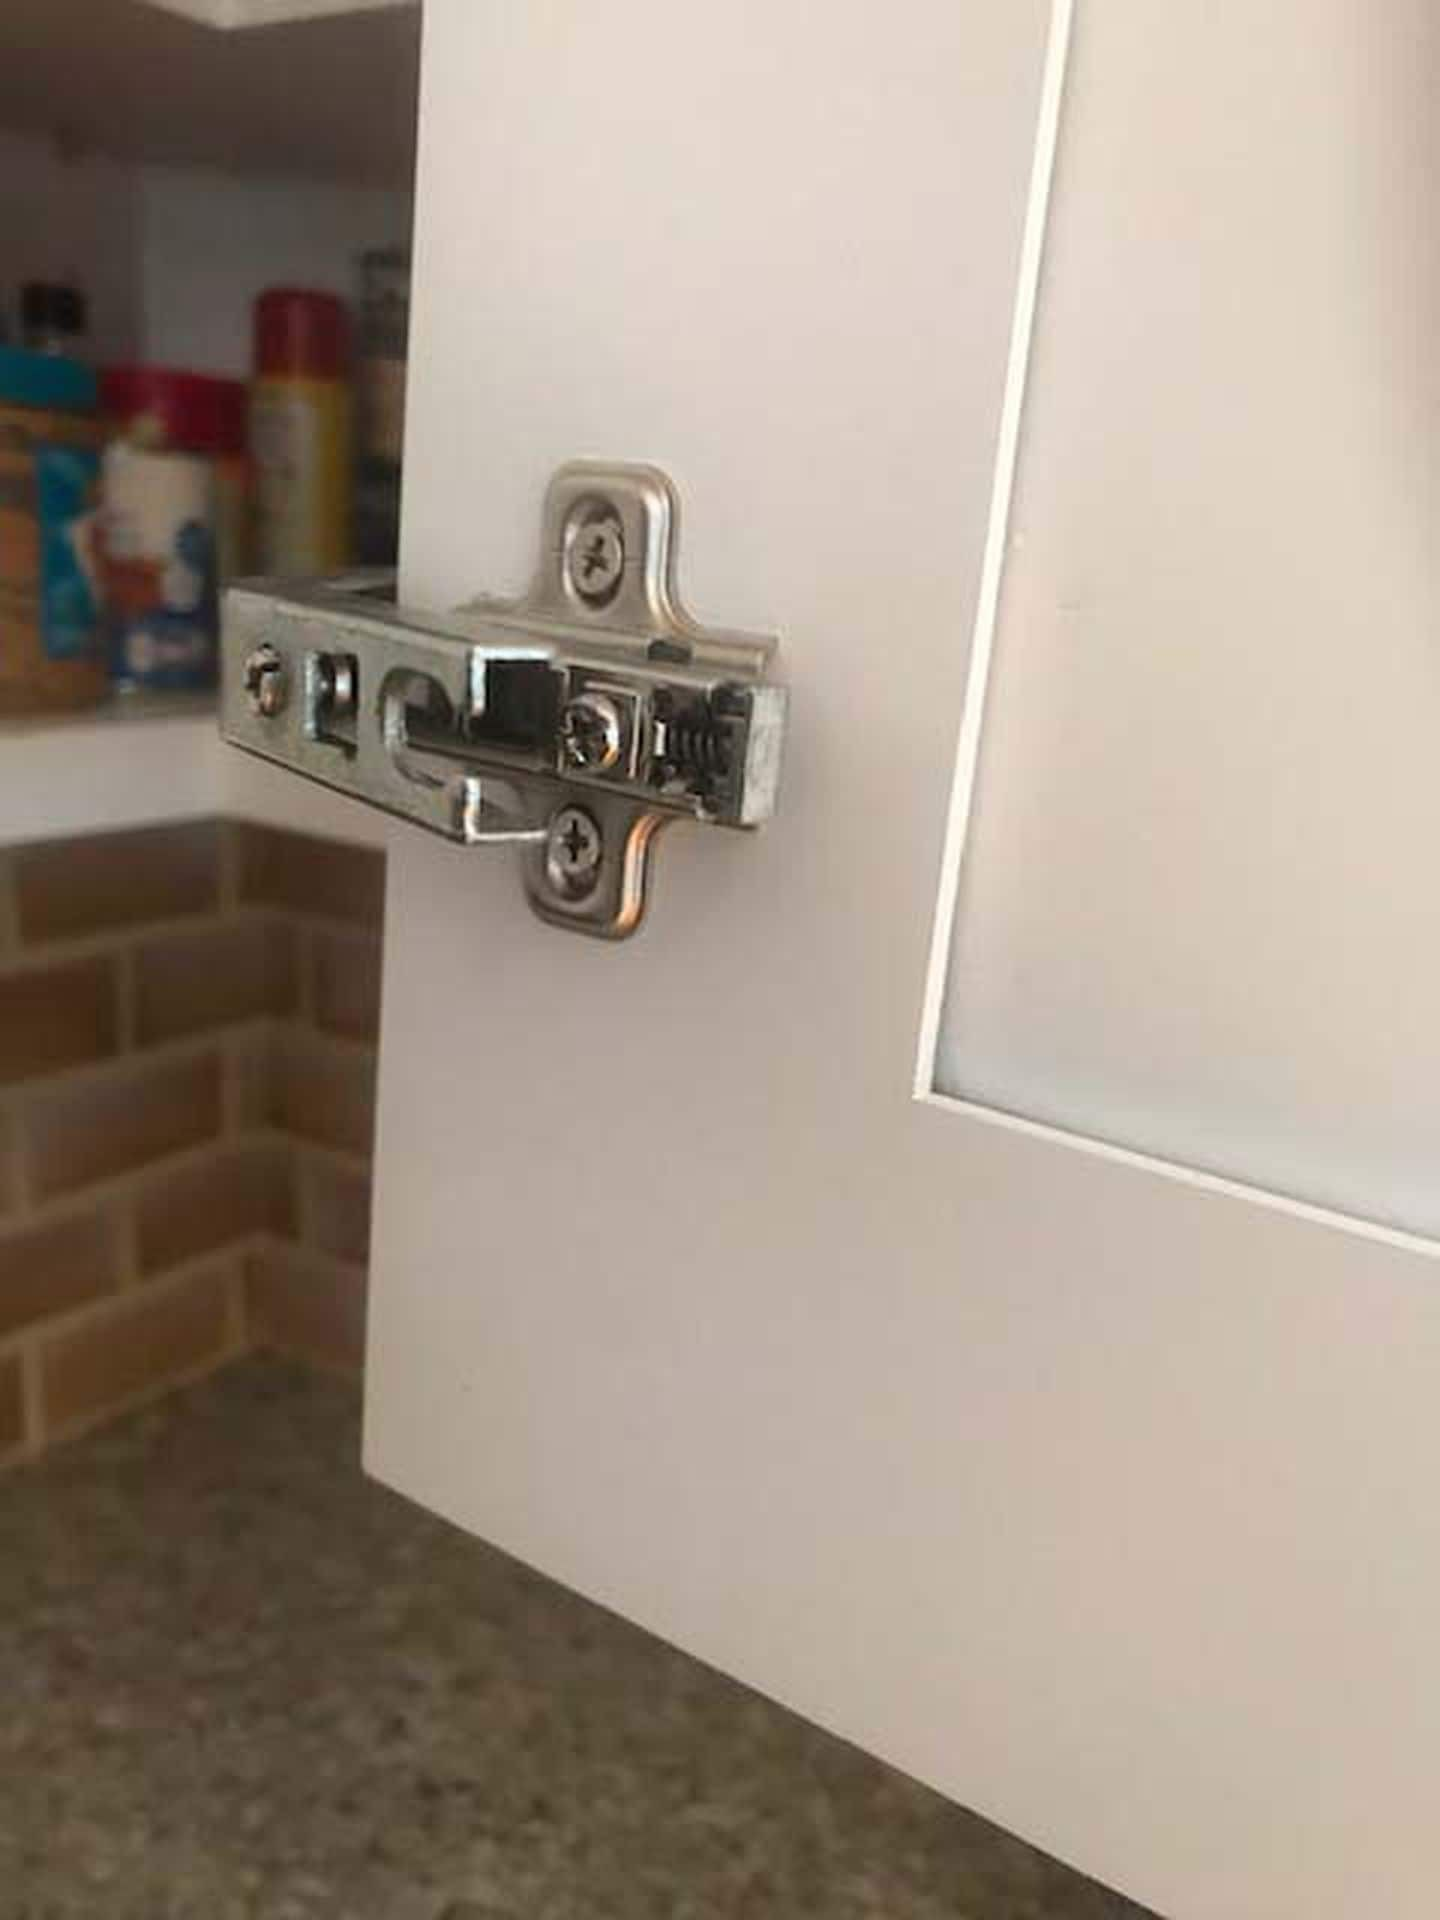 How To Adjust Old Cabinet Door Hinges 2020 In 2020 Kitchen Cabinets Hinges Hinges For Cabinets Old Cabinets